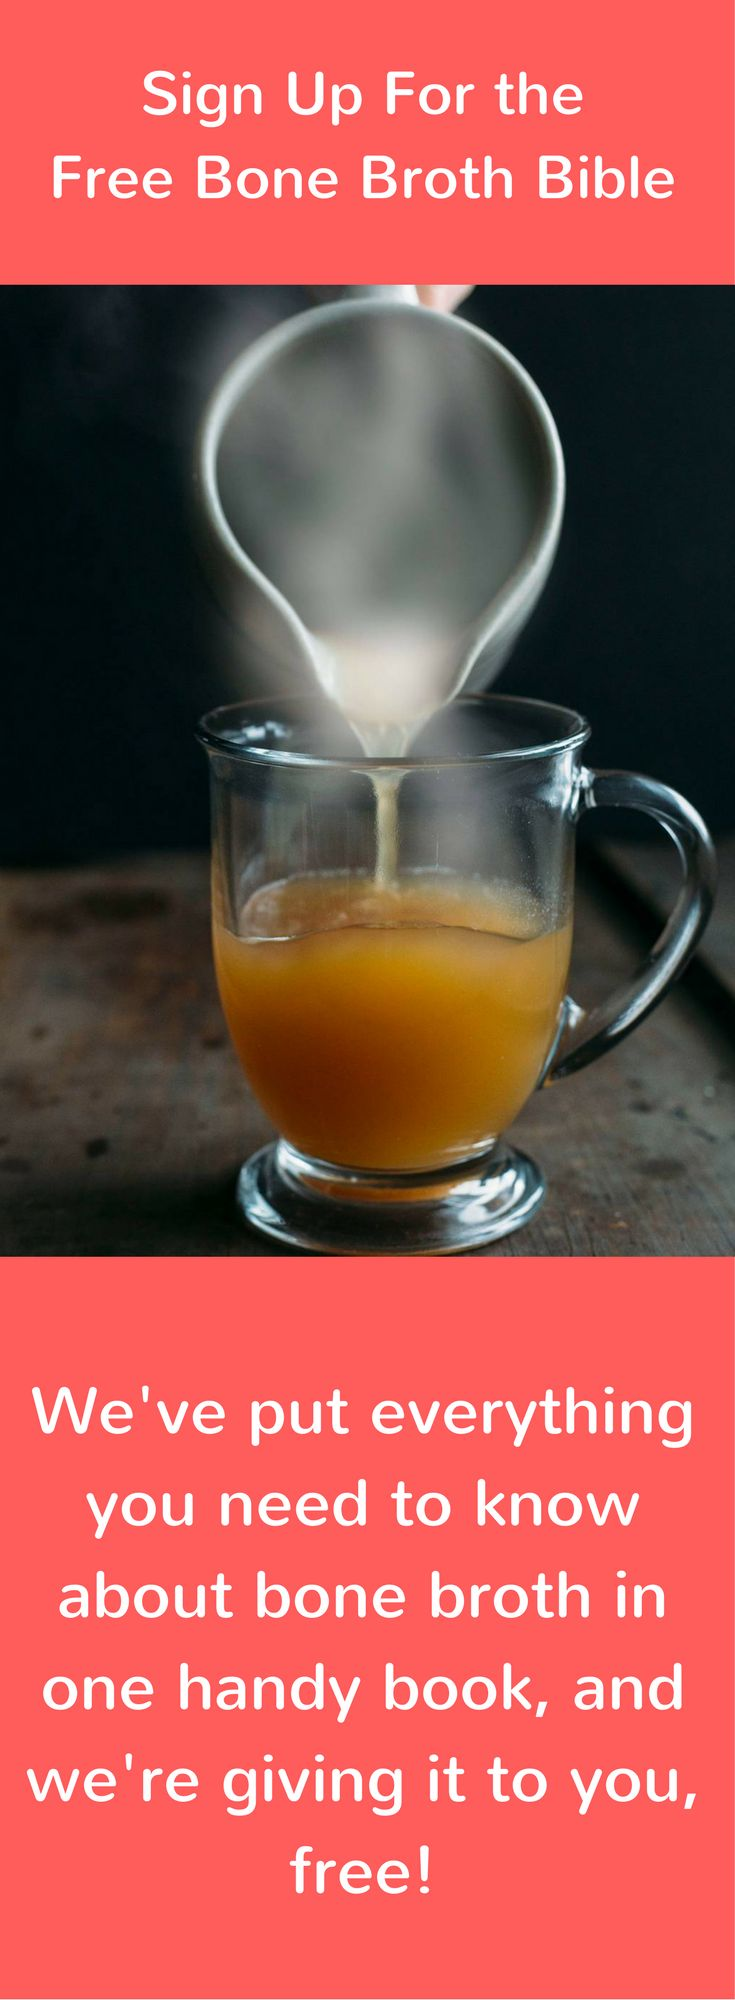 Grab this free 57 page ebook on everything there is to know about bone broth. Recipes, how to drink, benefit overview, and expert tips!